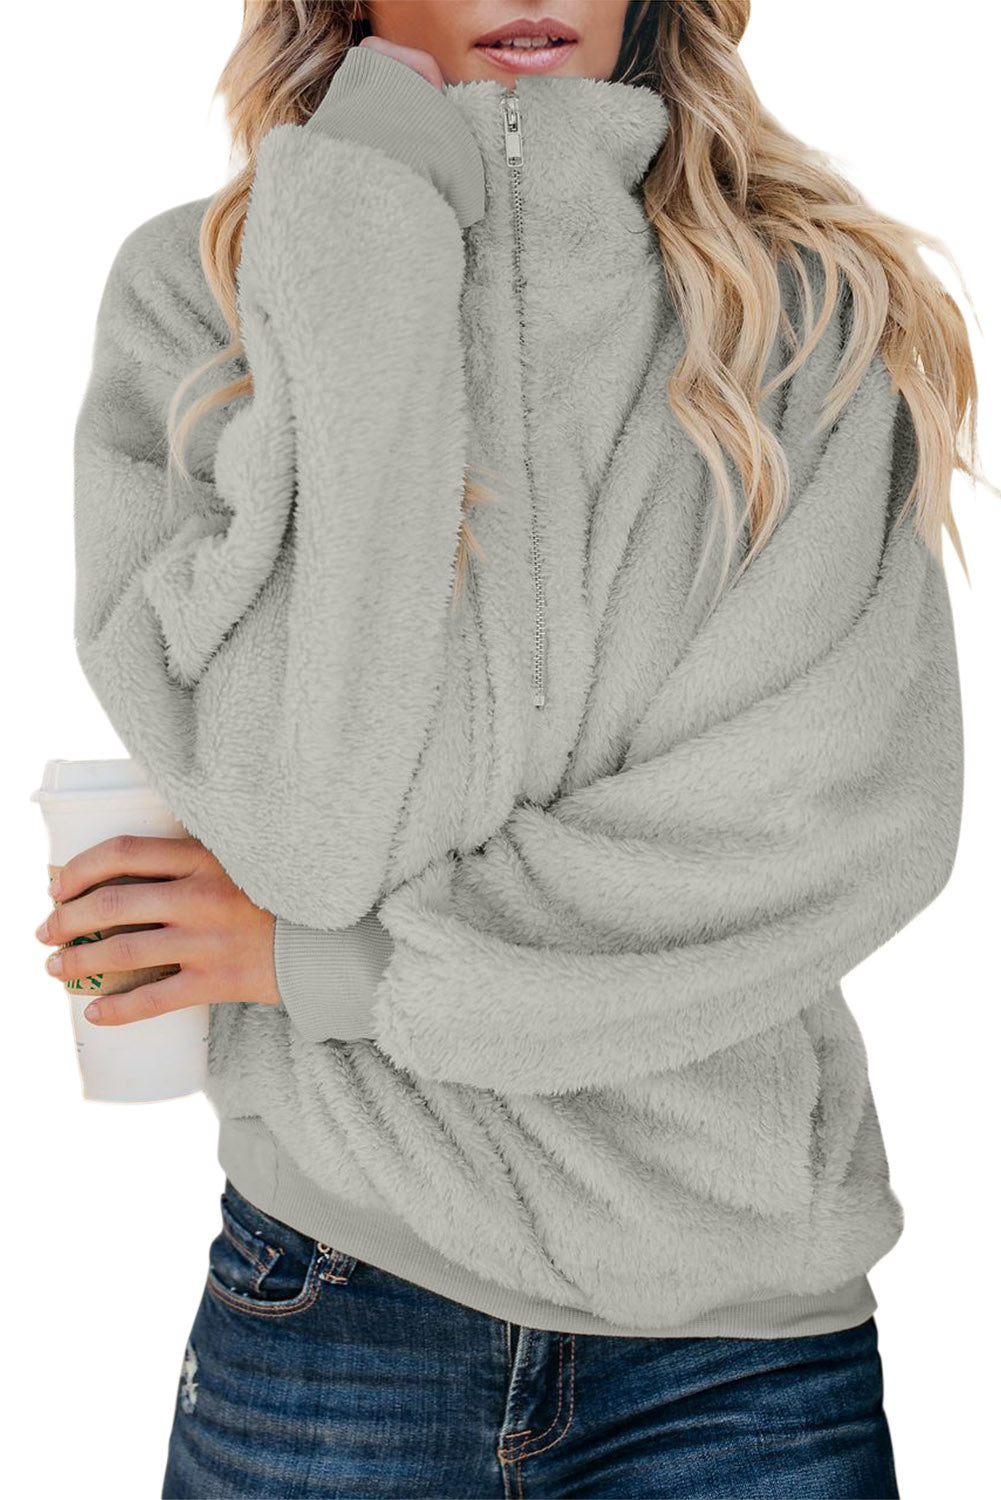 Gray Traverse Pocketed Sherpa Pullover Sweatshirt